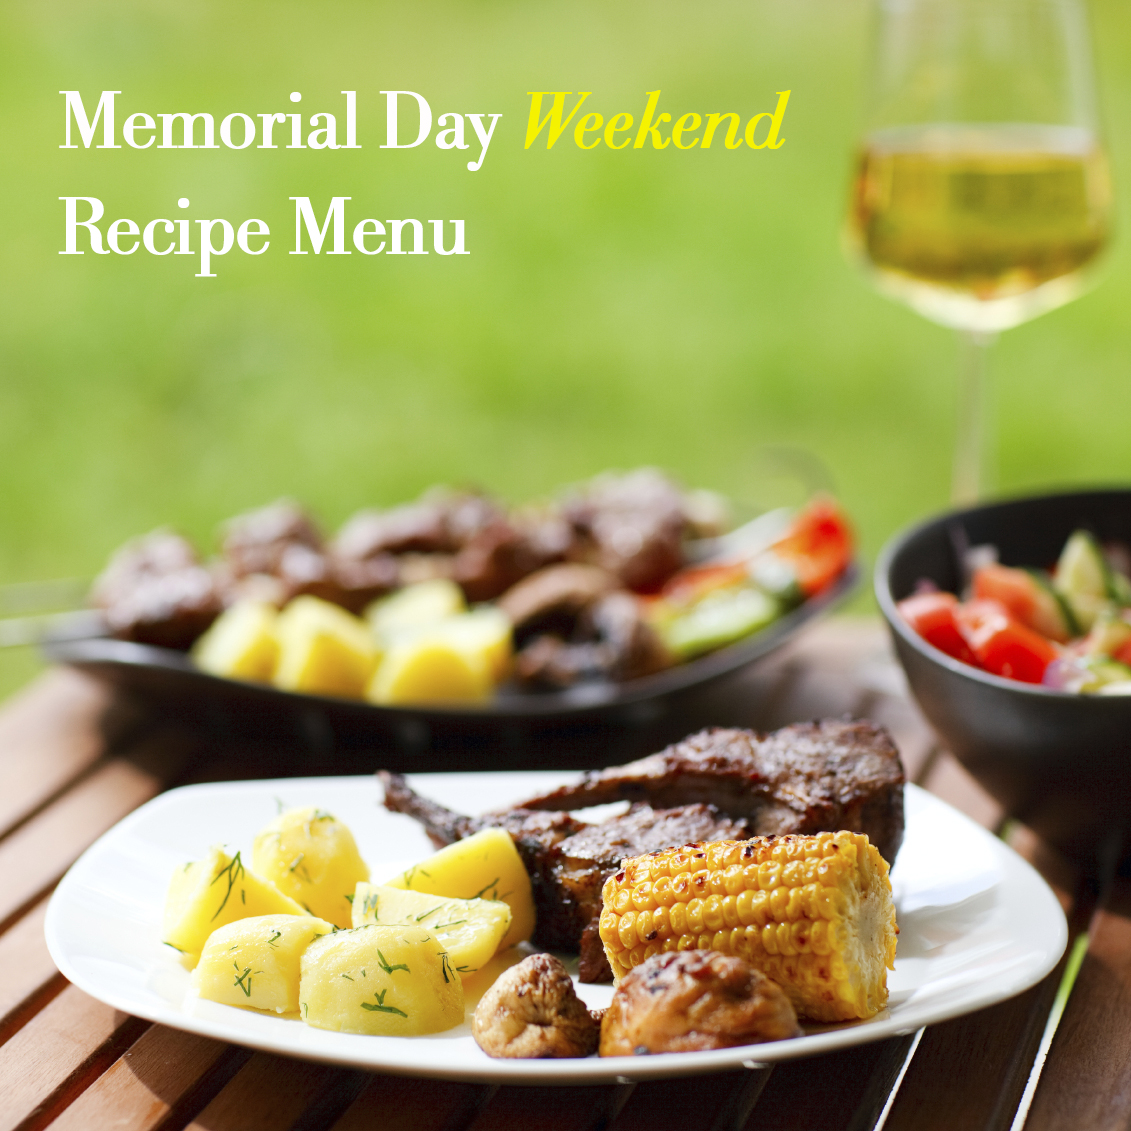 Memorial Day Weekend Recipe Menu